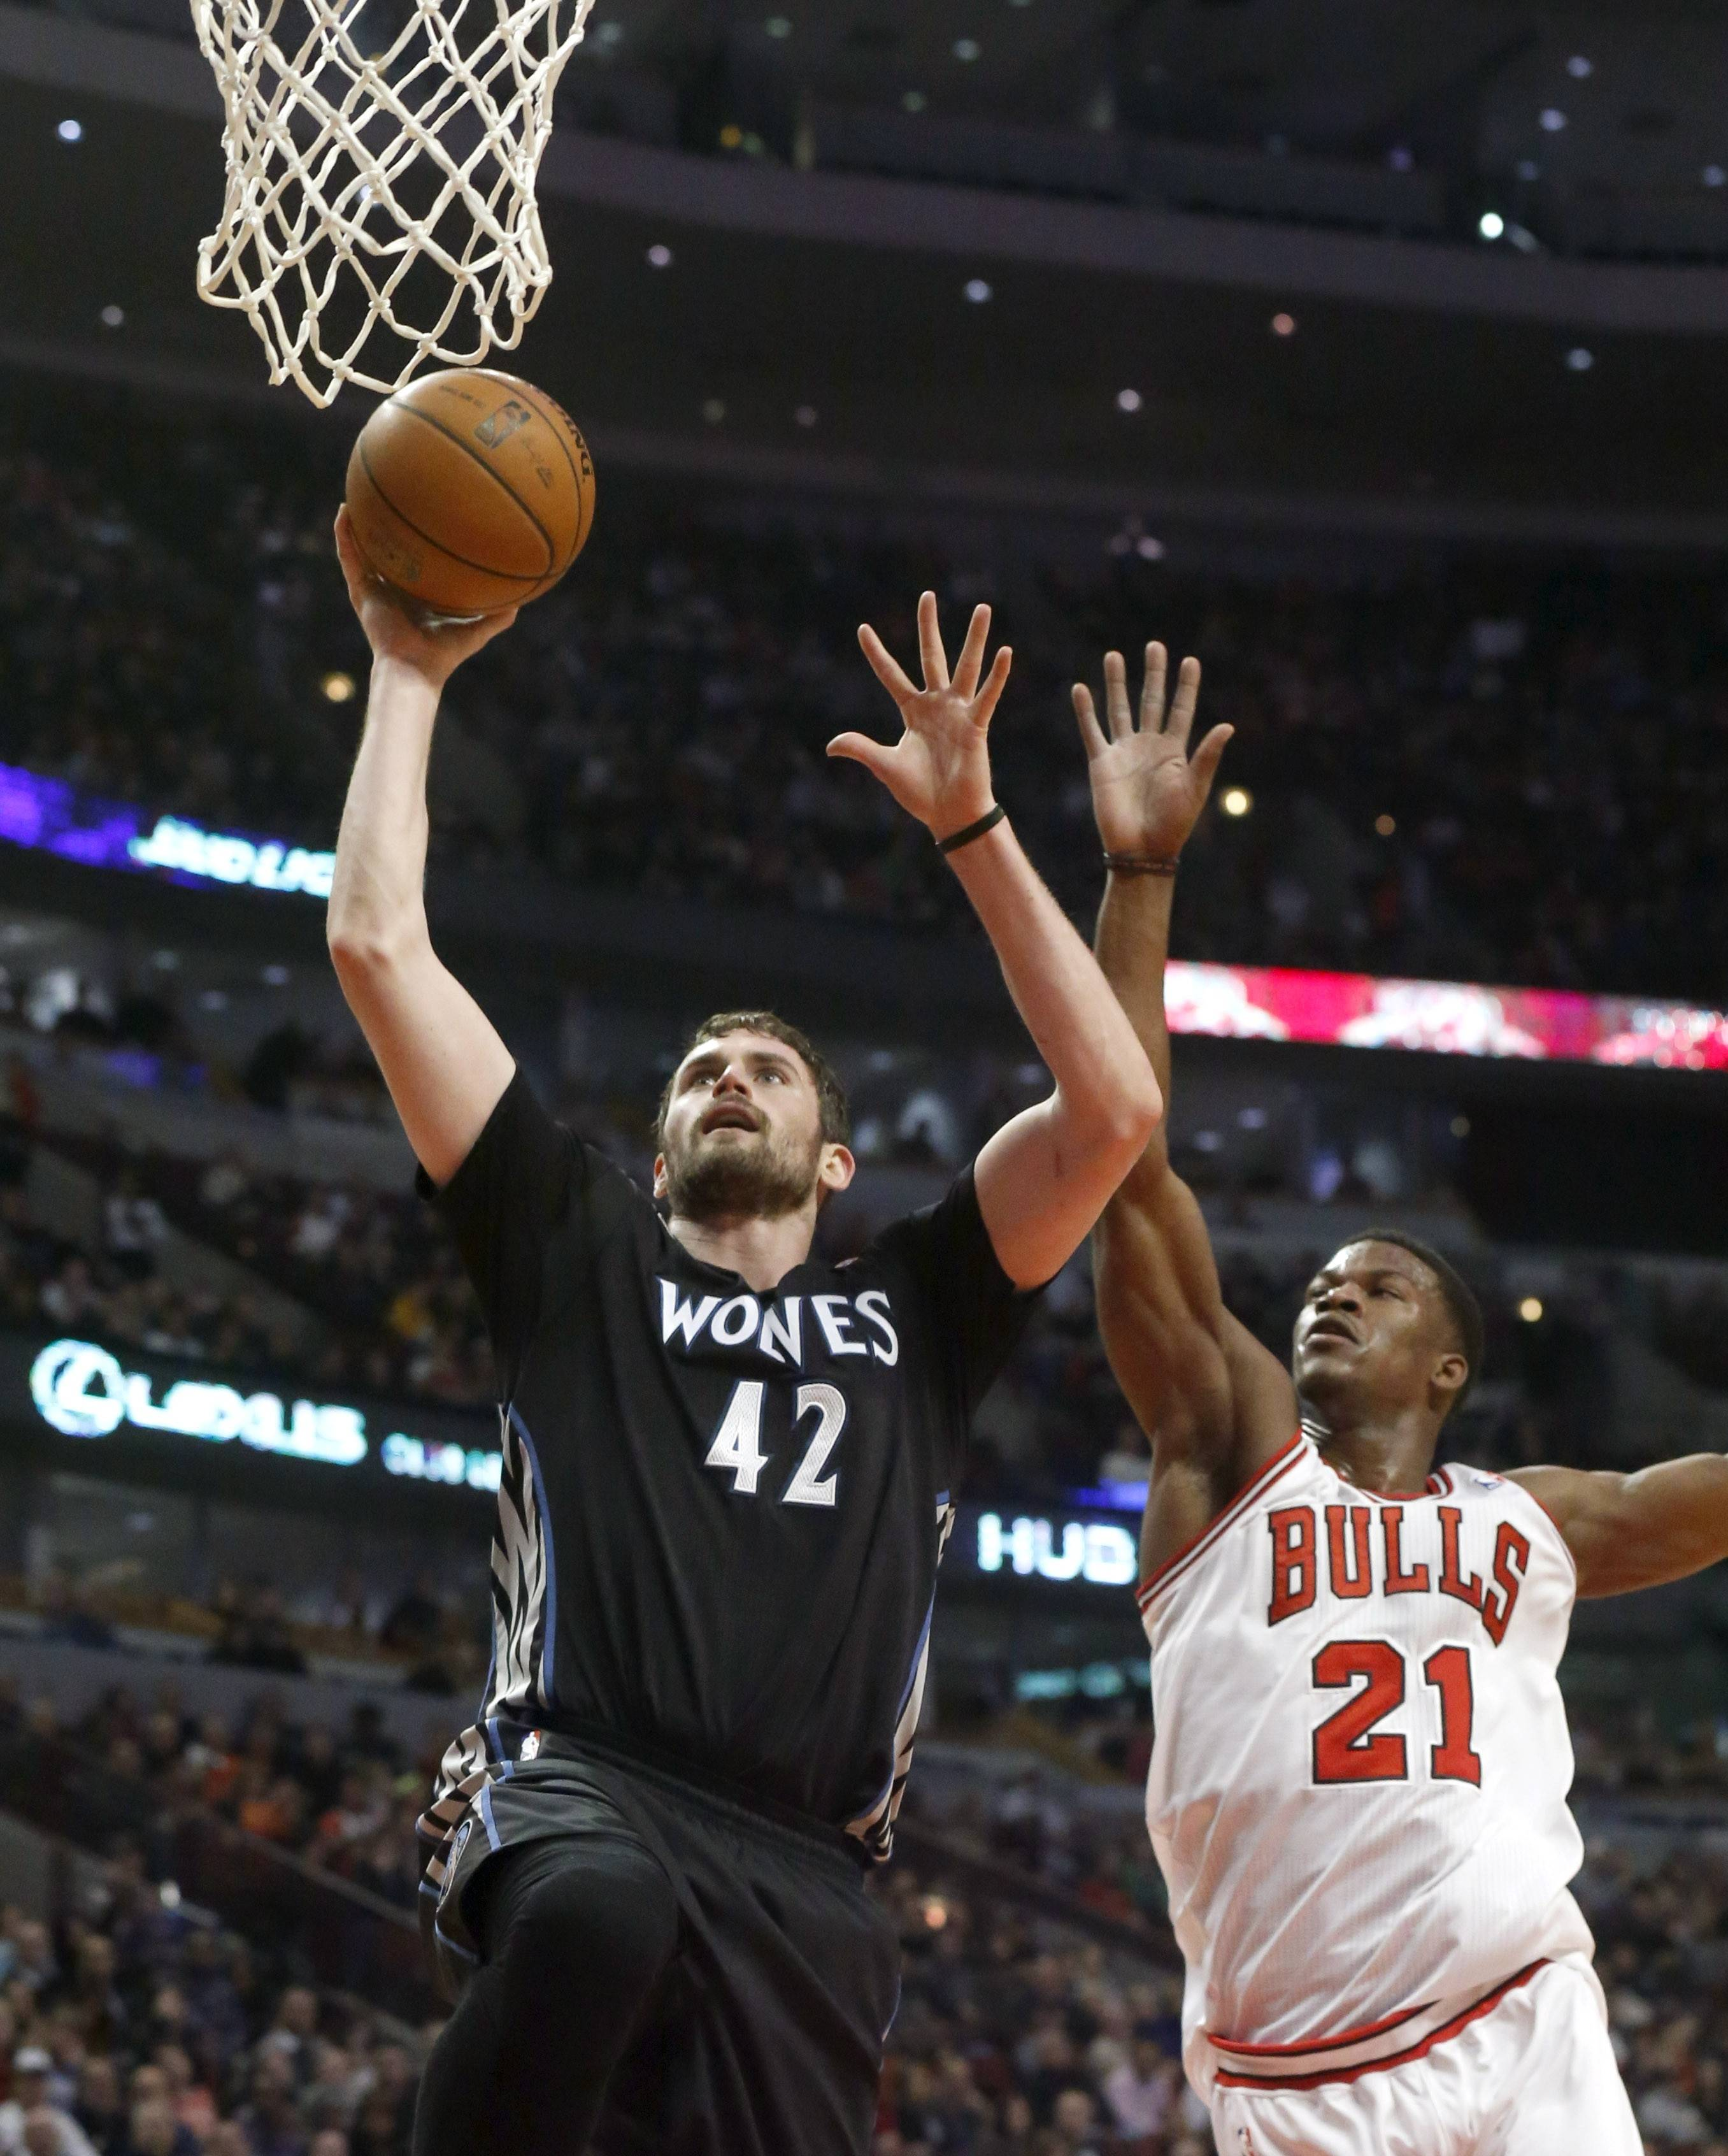 Minnesota Timberwolves forward Kevin Love (42) scores past Chicago Bulls guard Jimmy Butler (21) during the first half of an NBA basketball game, Monday, Jan. 27, 2014, in Chicago.